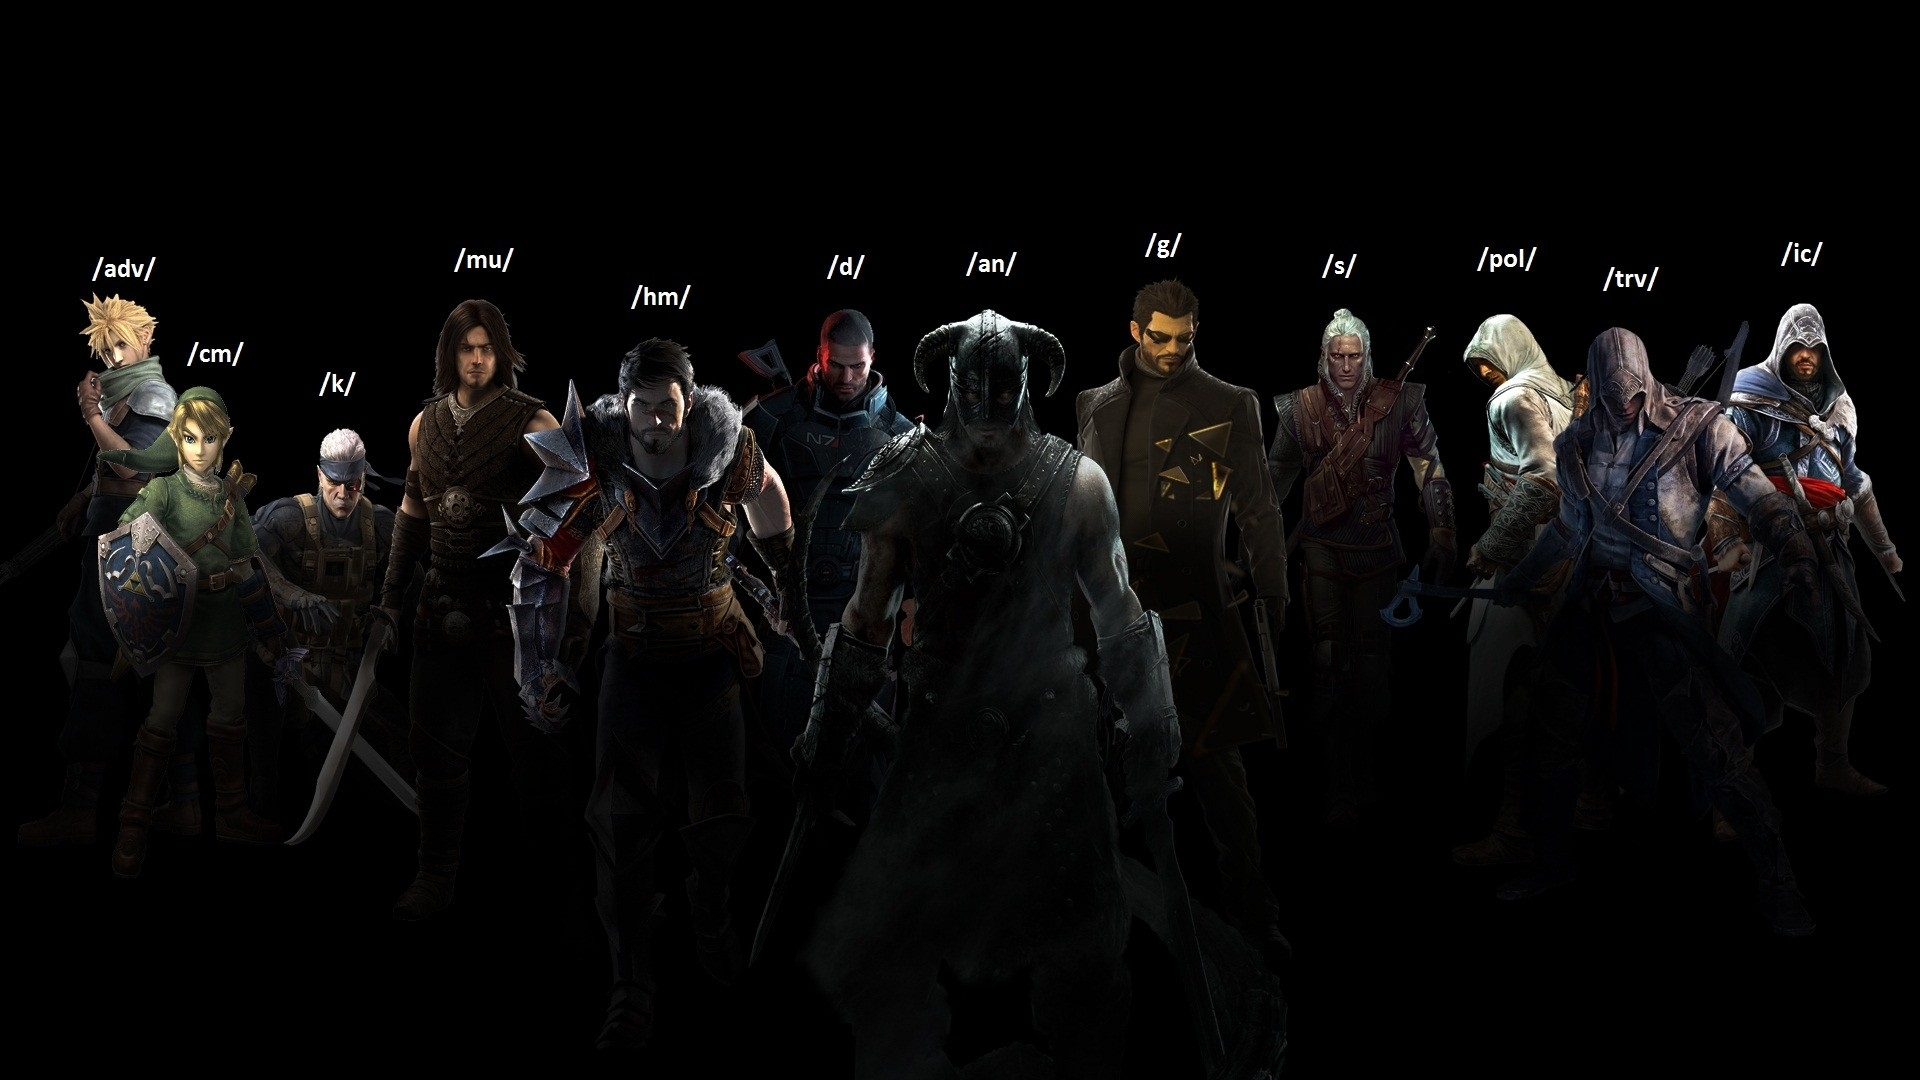 video games assassins creed the witcher prince of persia the legend of 1920x1080